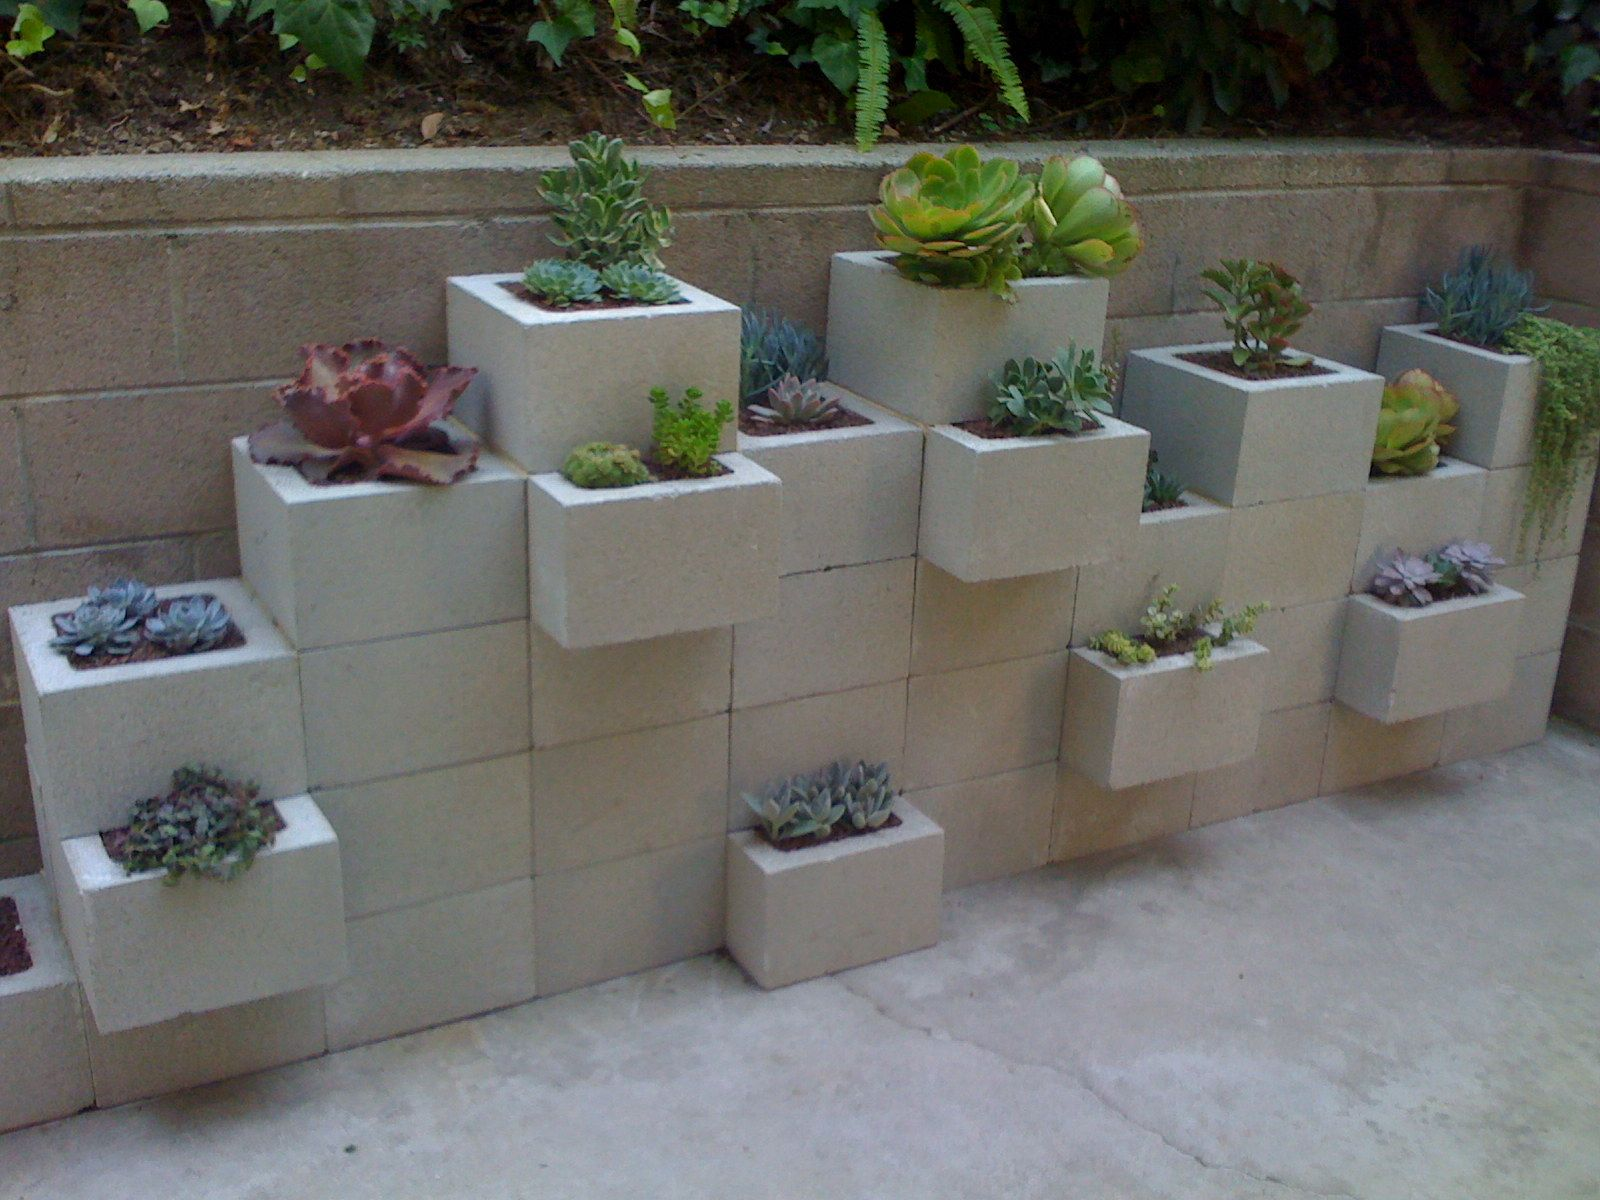 Concrete Garden Planters Using Cinder Blocks To Make A Planter For Succulents Or